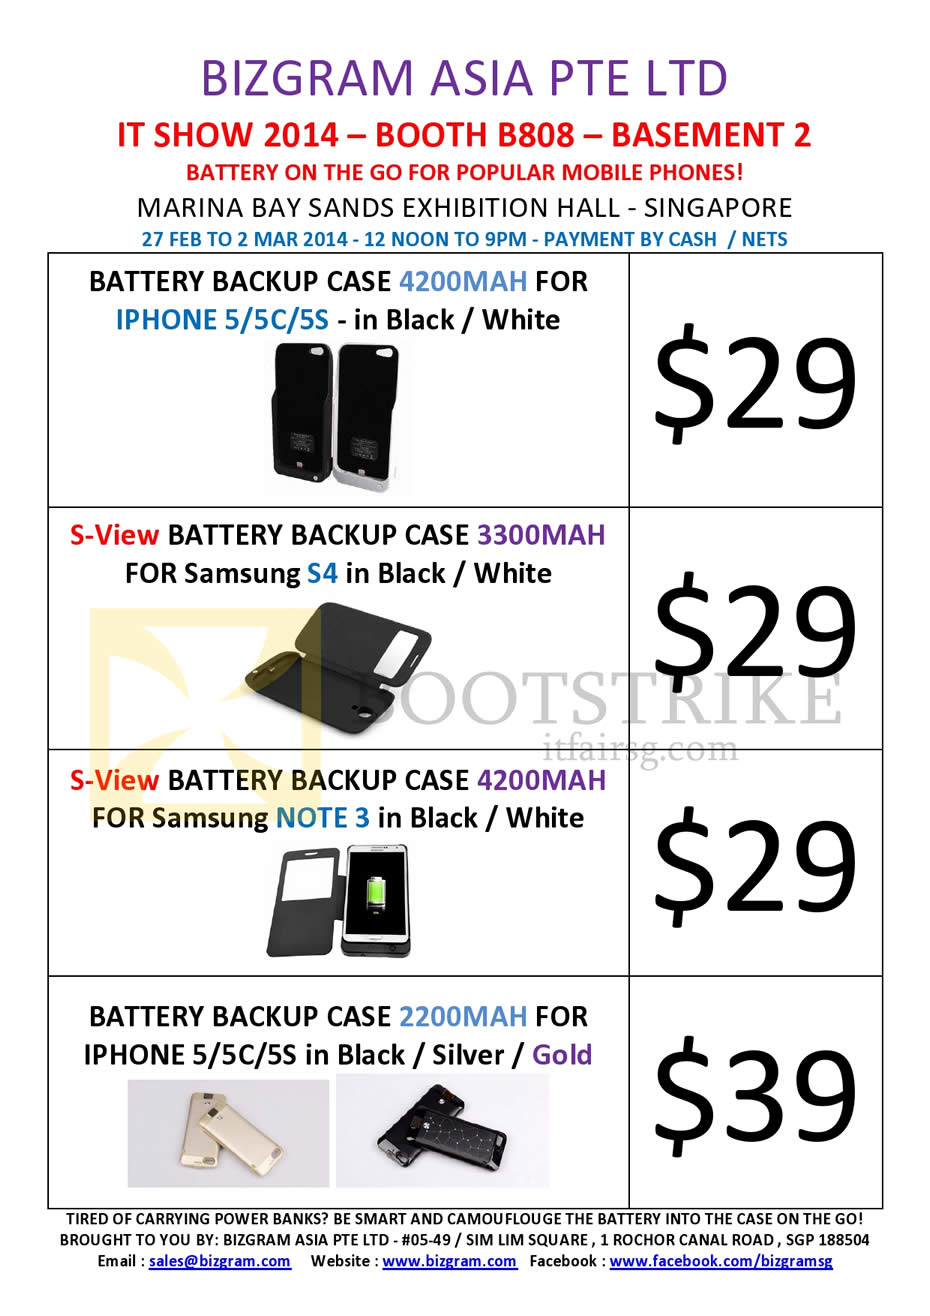 IT SHOW 2014 price list image brochure of Bizgram Accessories Power Banks